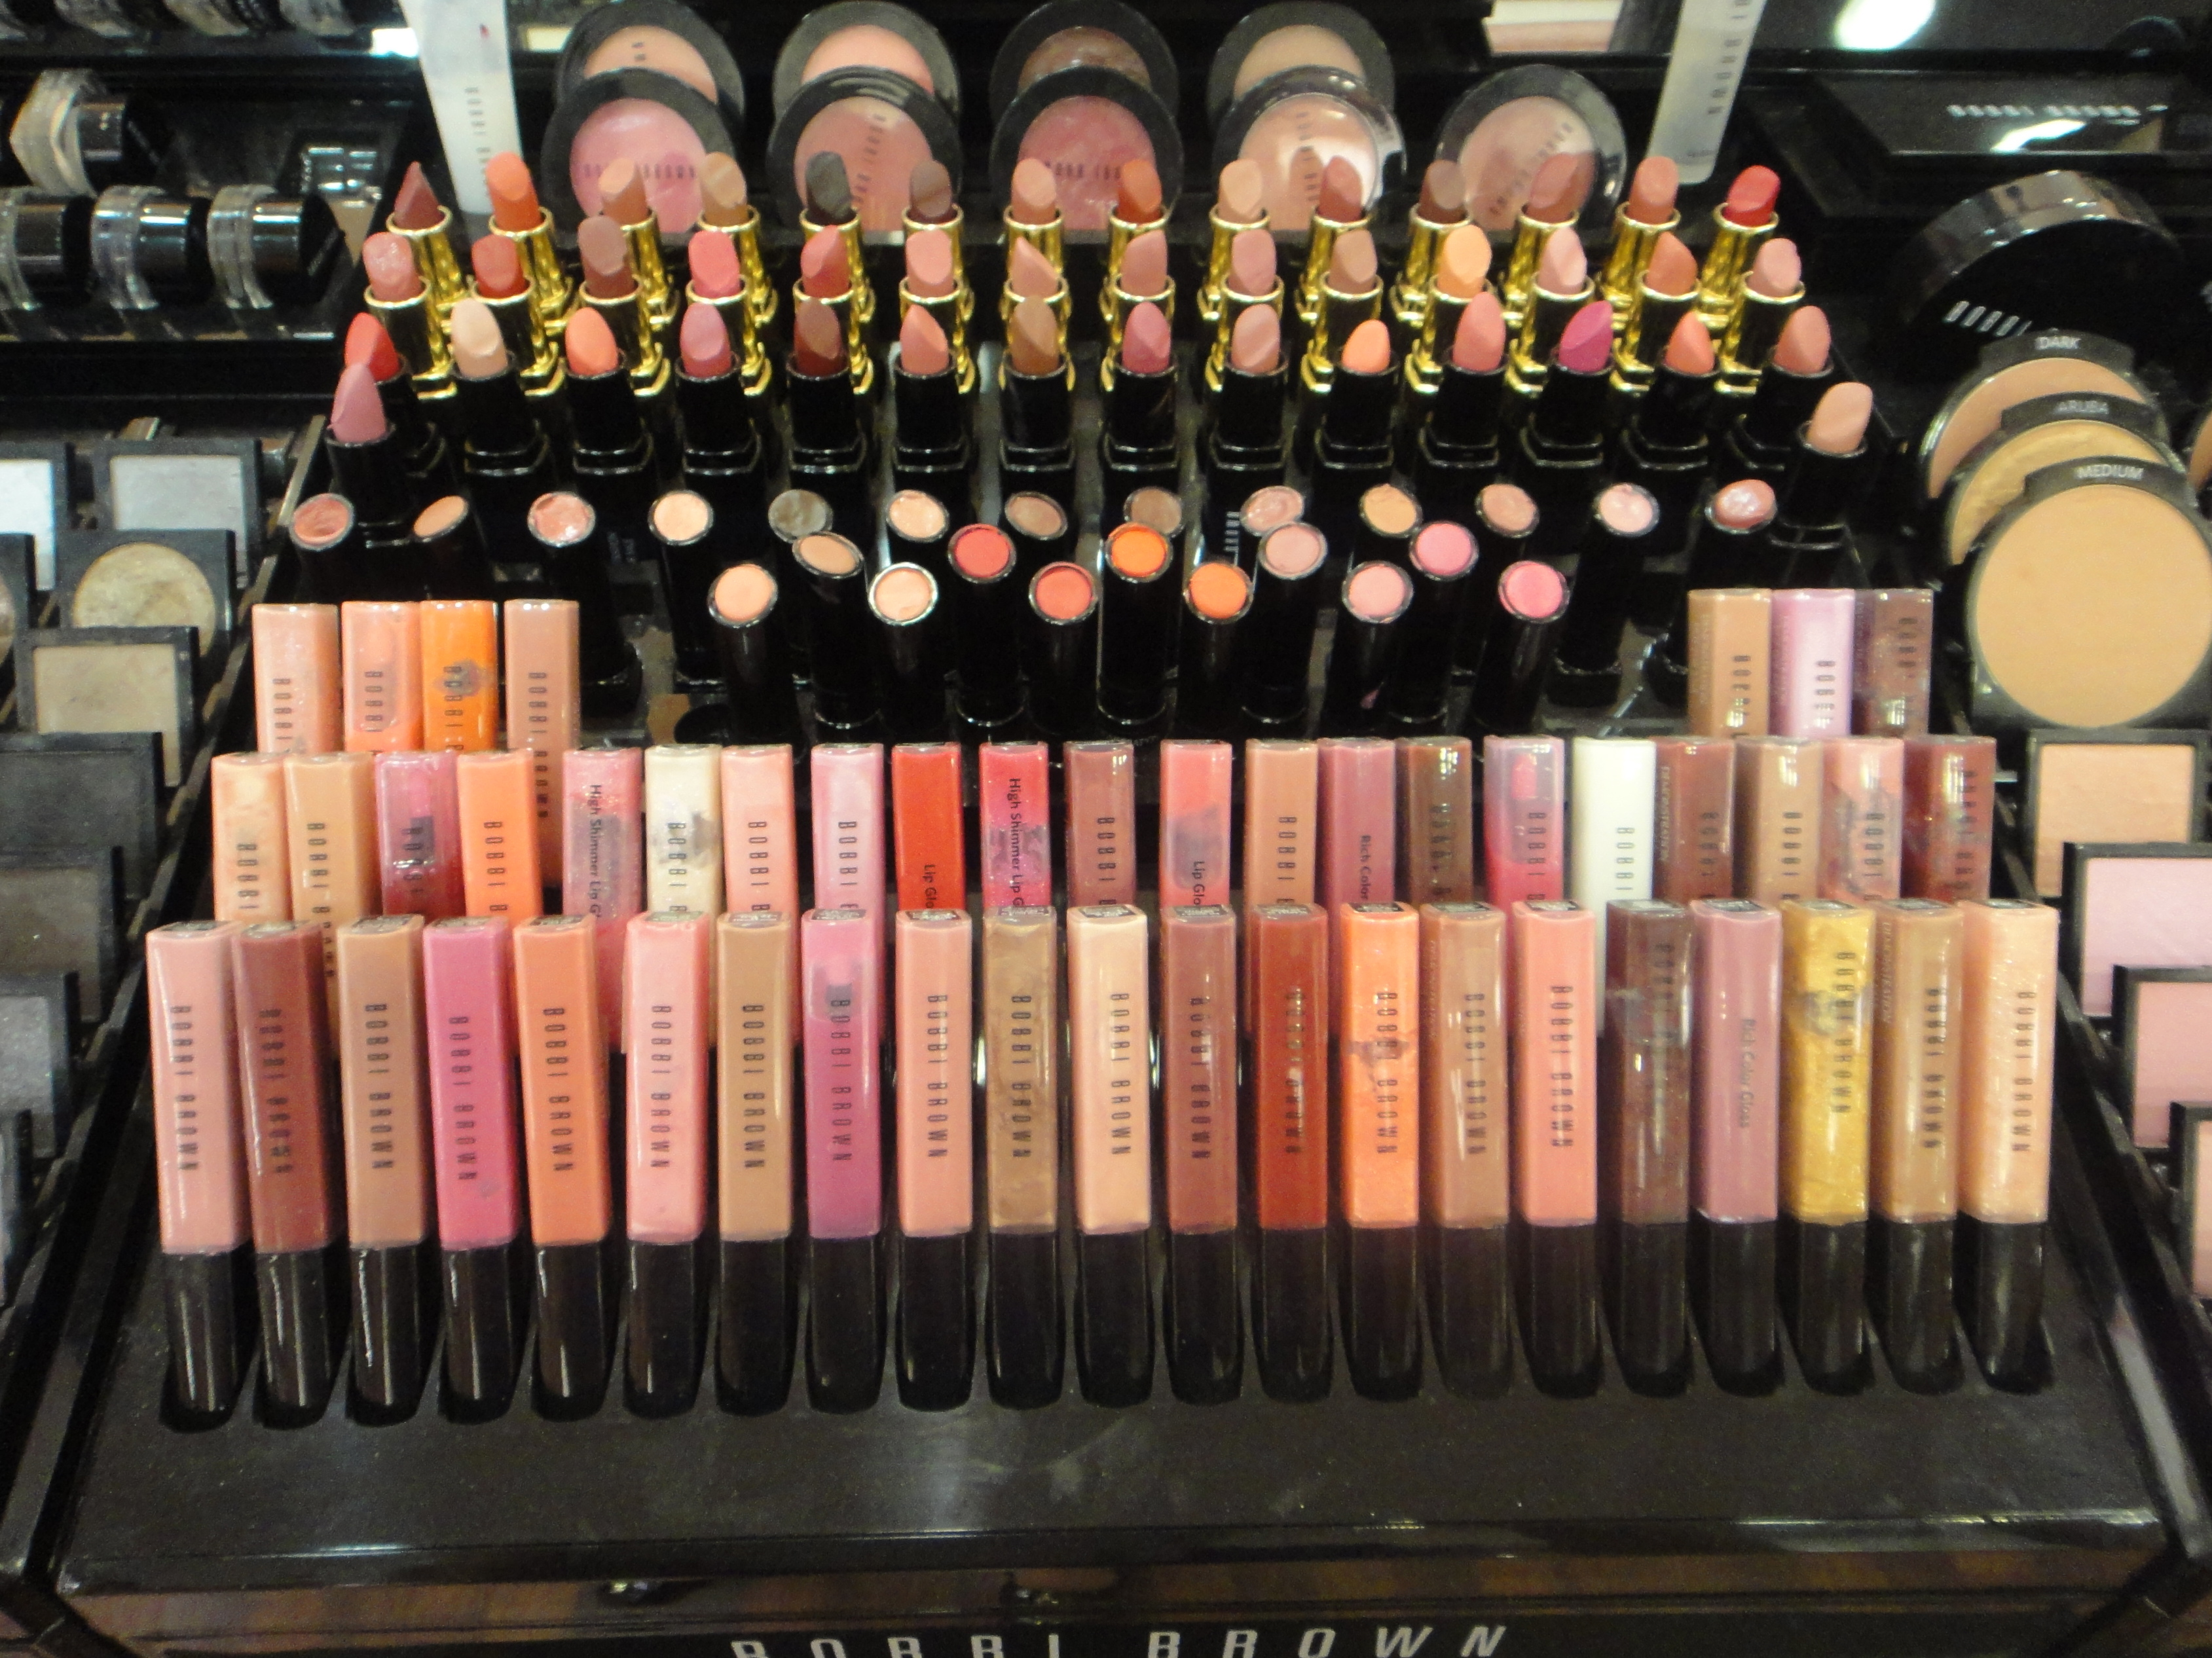 Bobbi Brown lip sticks and glosses